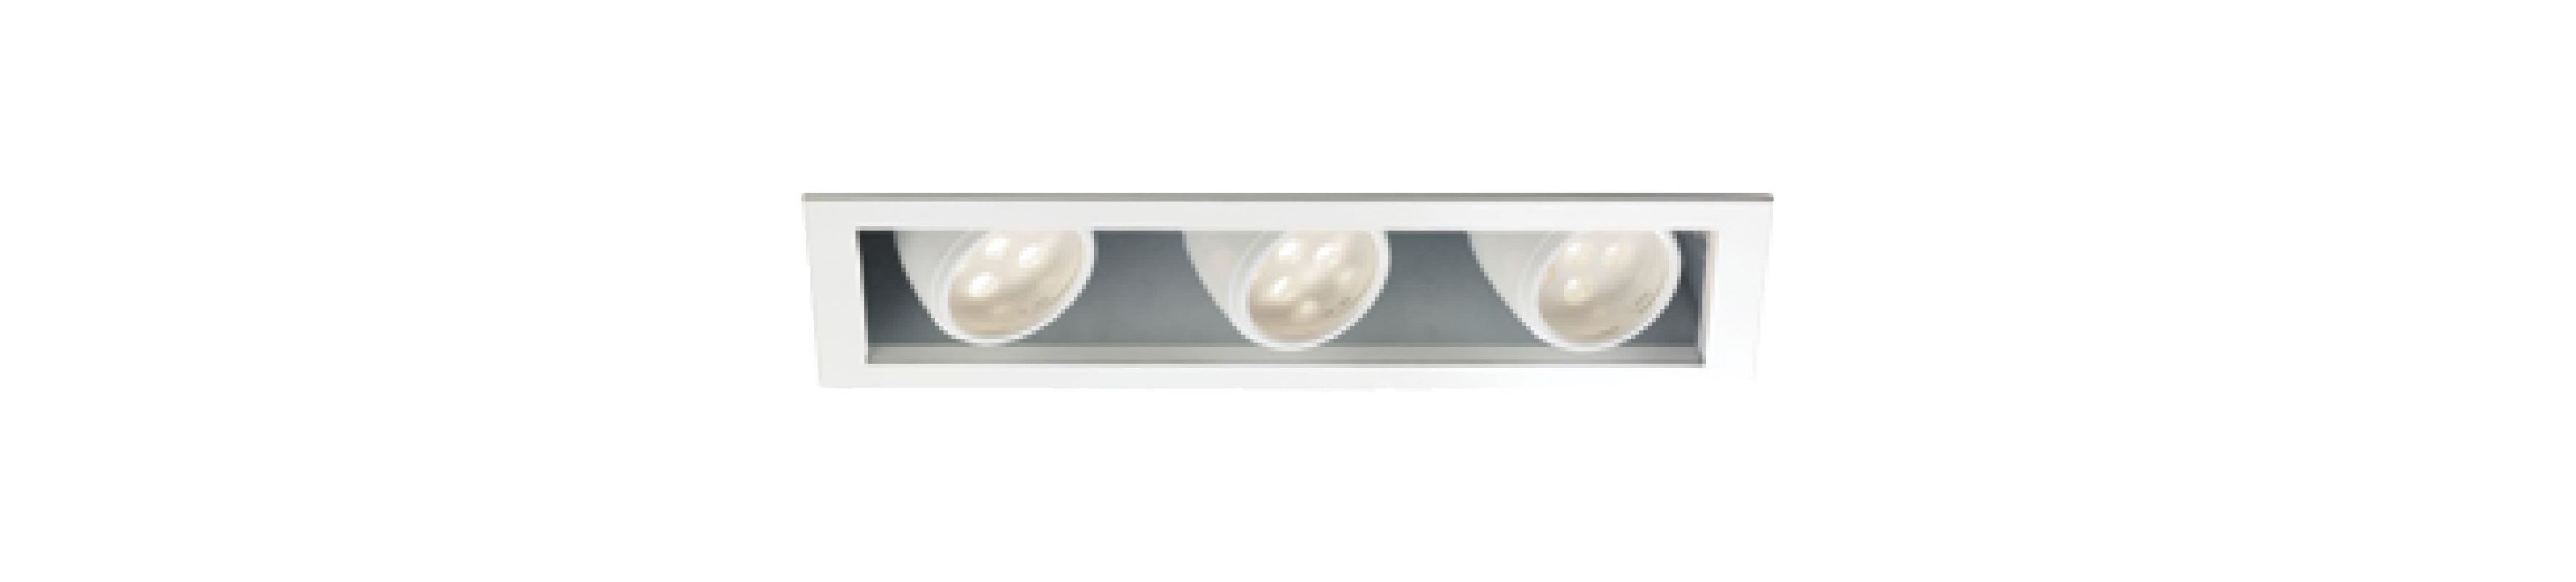 WAC Lighting MT-LED318F-CWHS Multiple Spot 4500K High Output LED